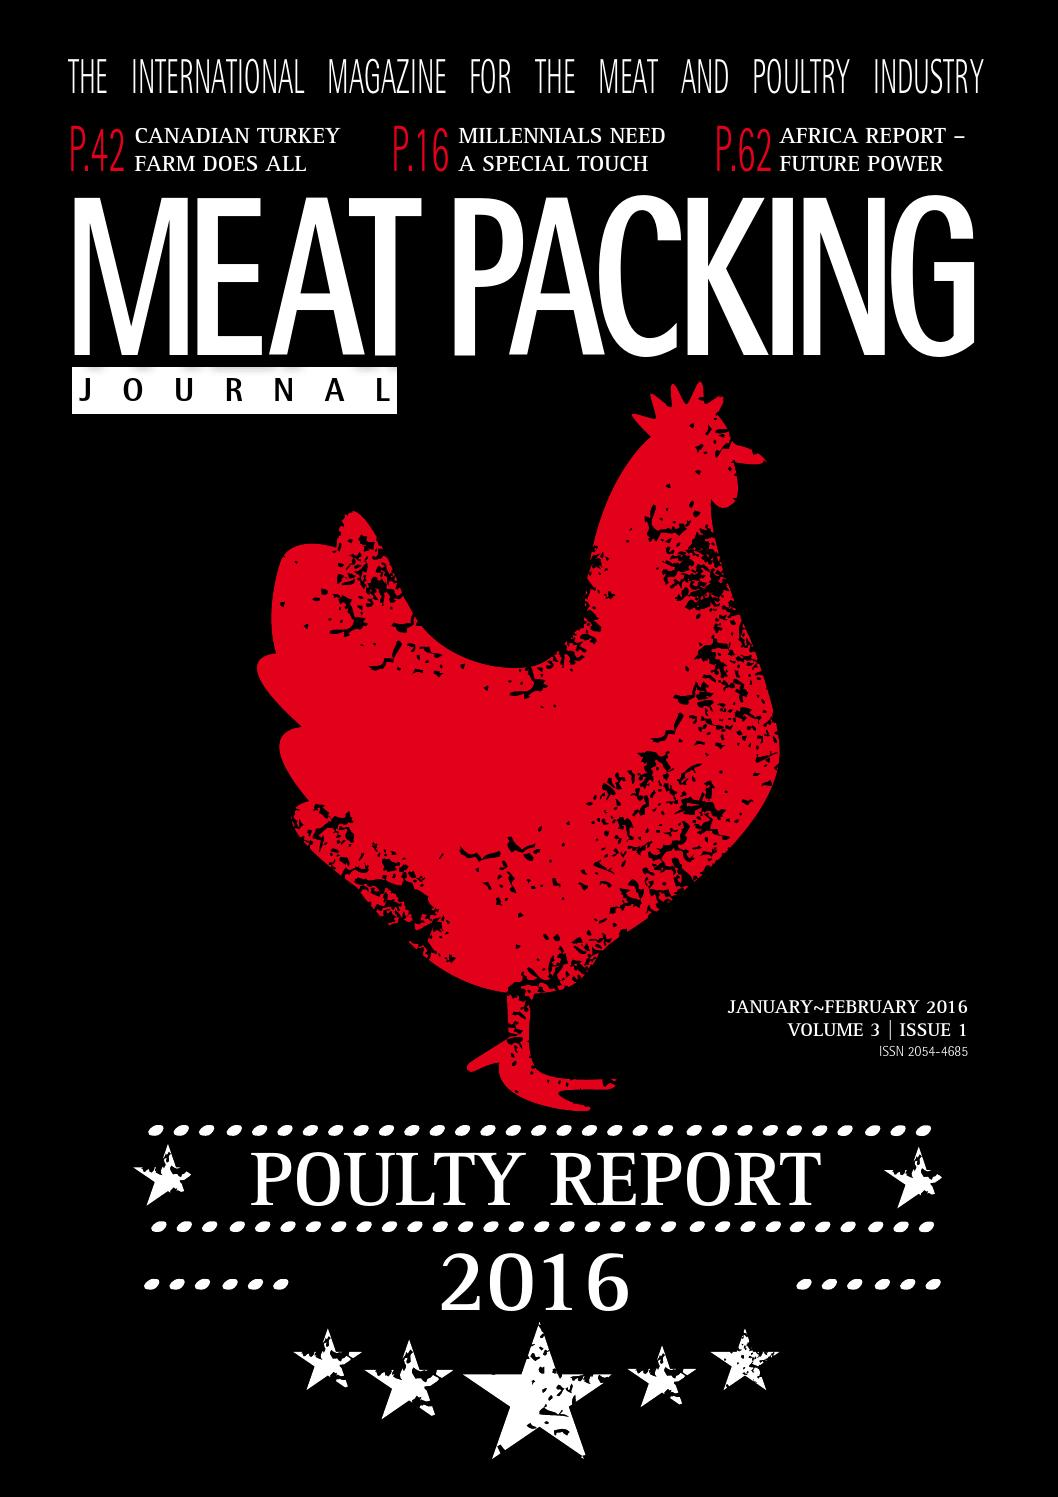 Buy research paper online unsafe working conditions for meatpacking plant employees